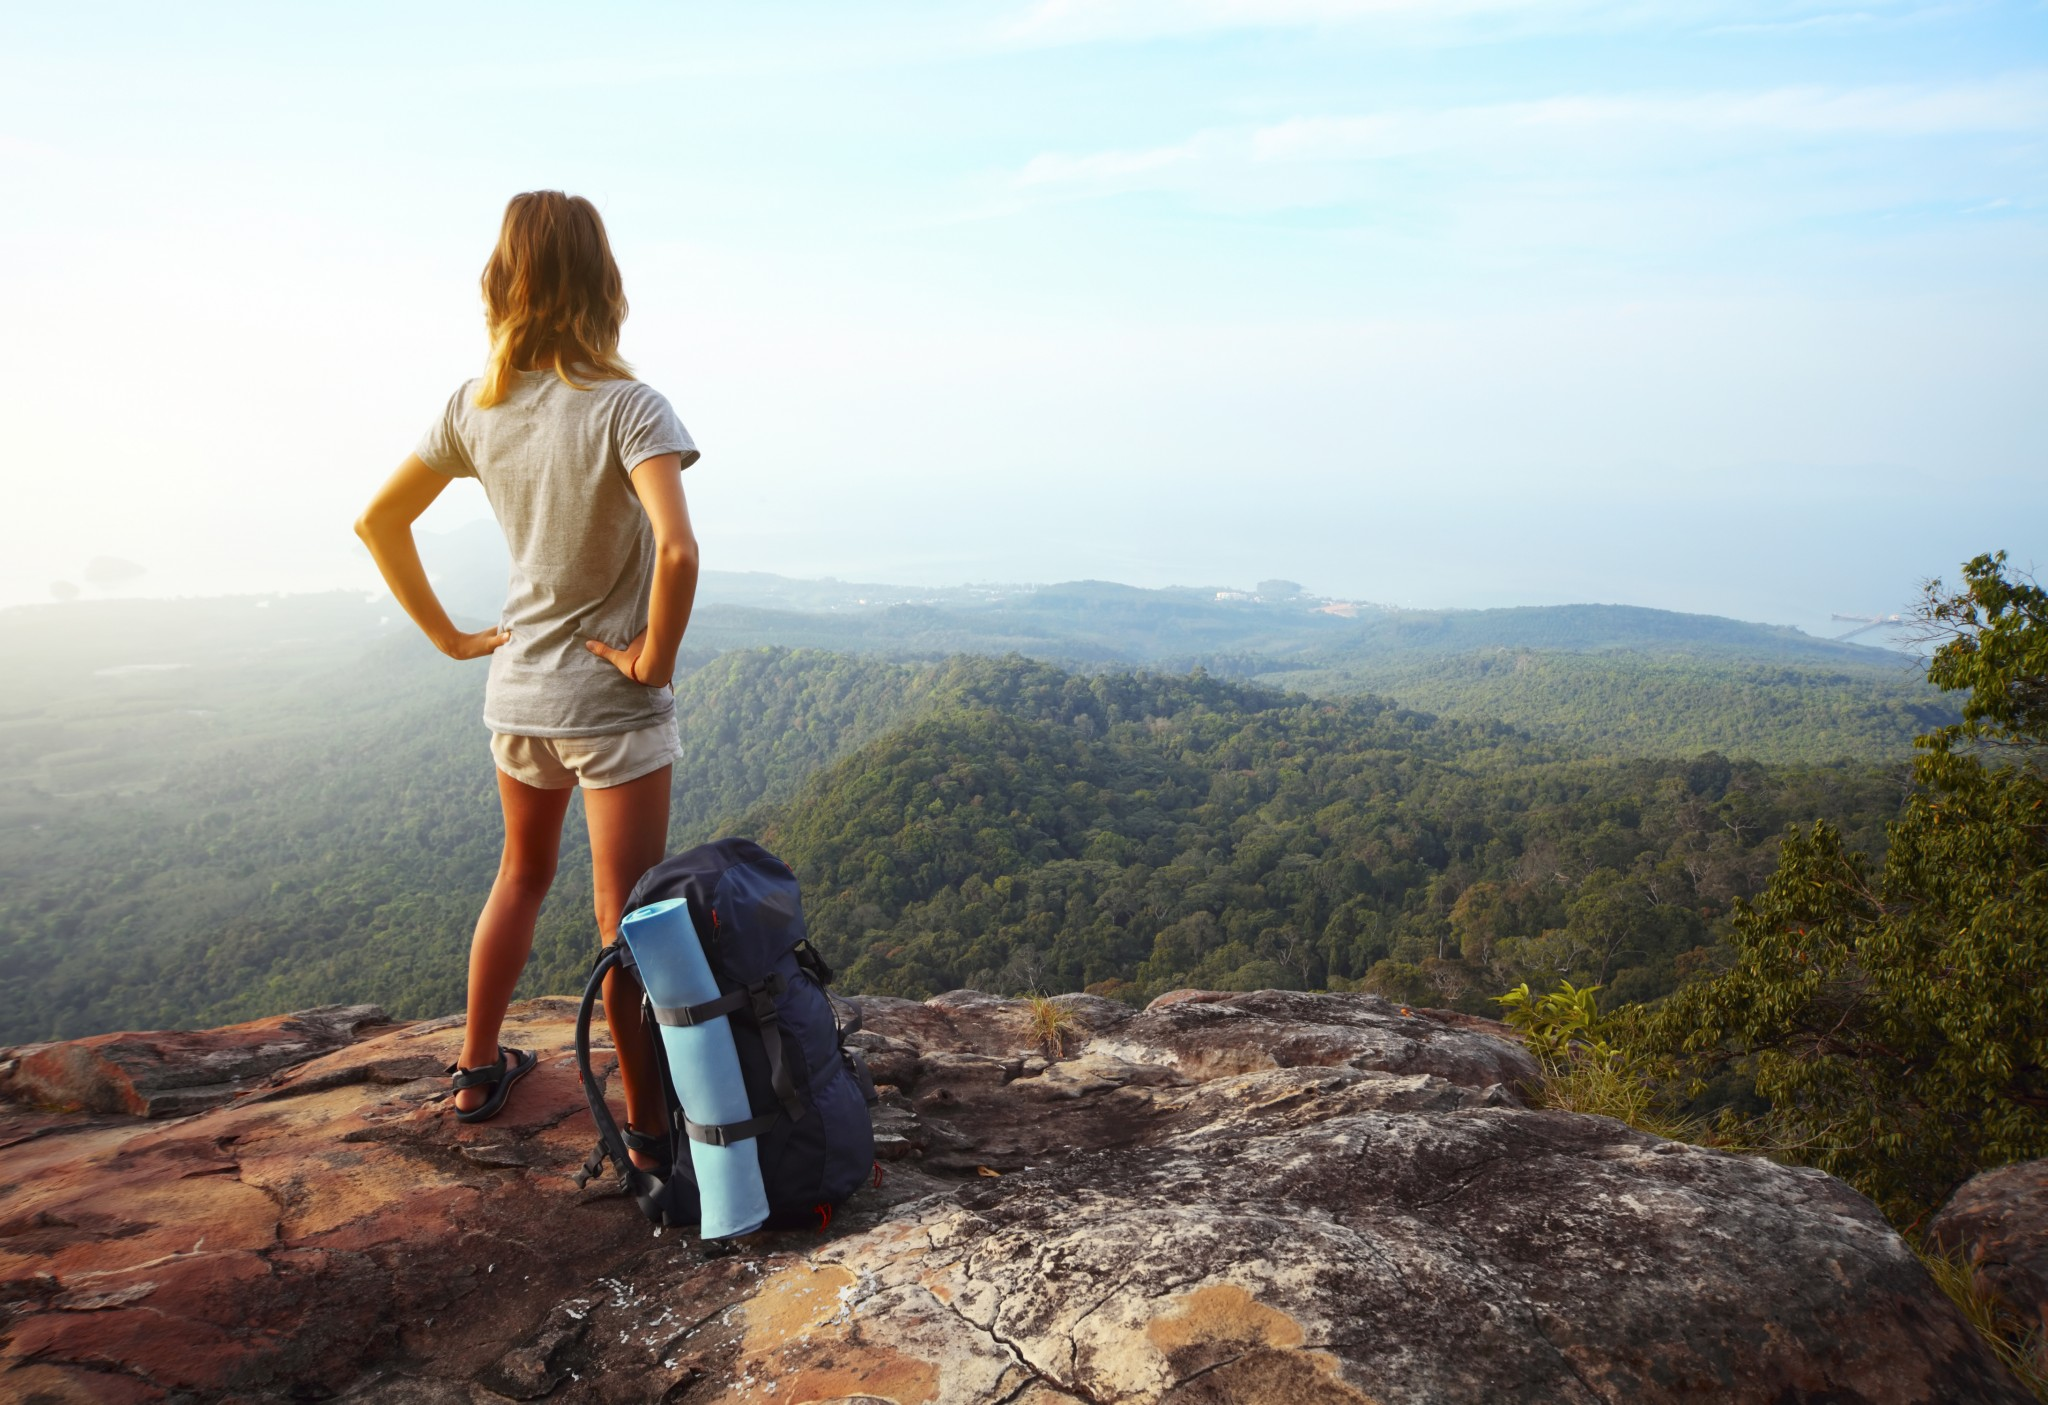 Discussion on this topic: How to (Safely) Travel Alone as aWoman, how-to-safely-travel-alone-as-awoman/